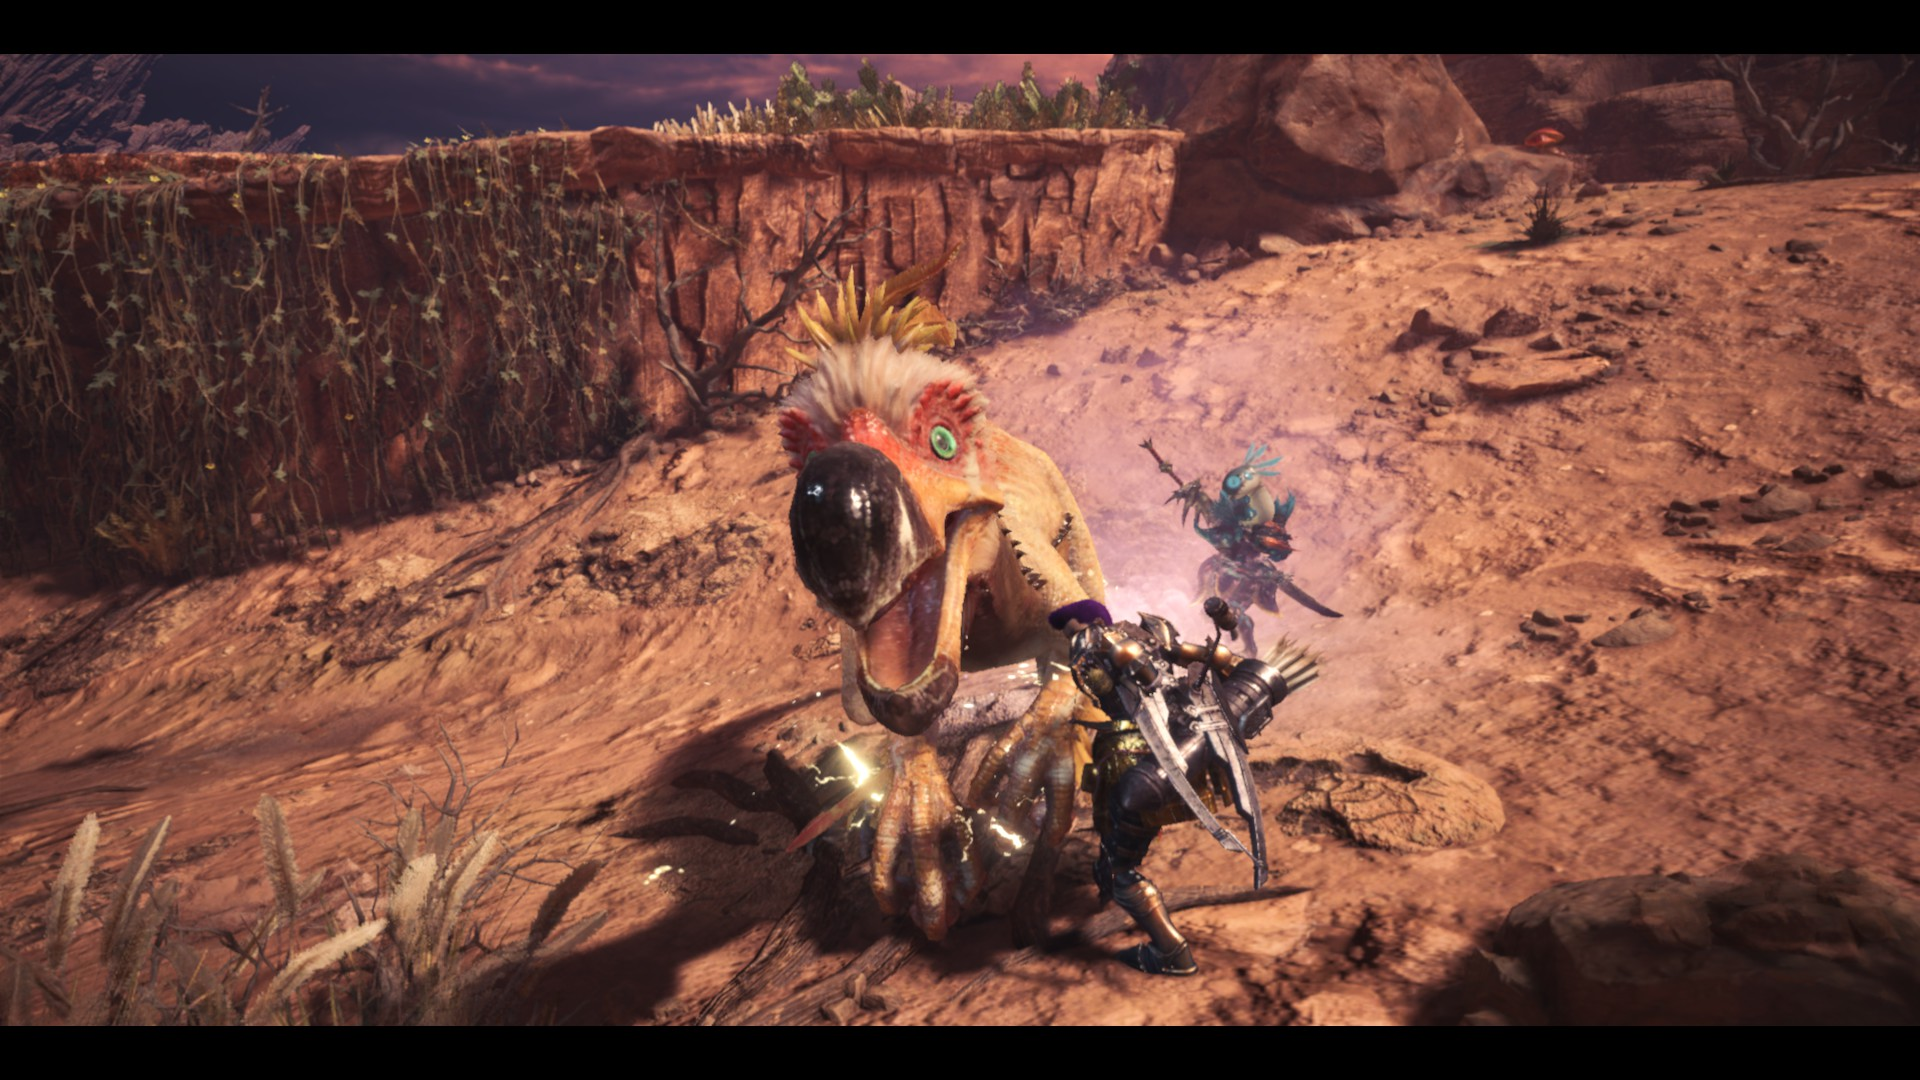 Monster Hunter MT: I just shot poop at the girlfriend whenever she